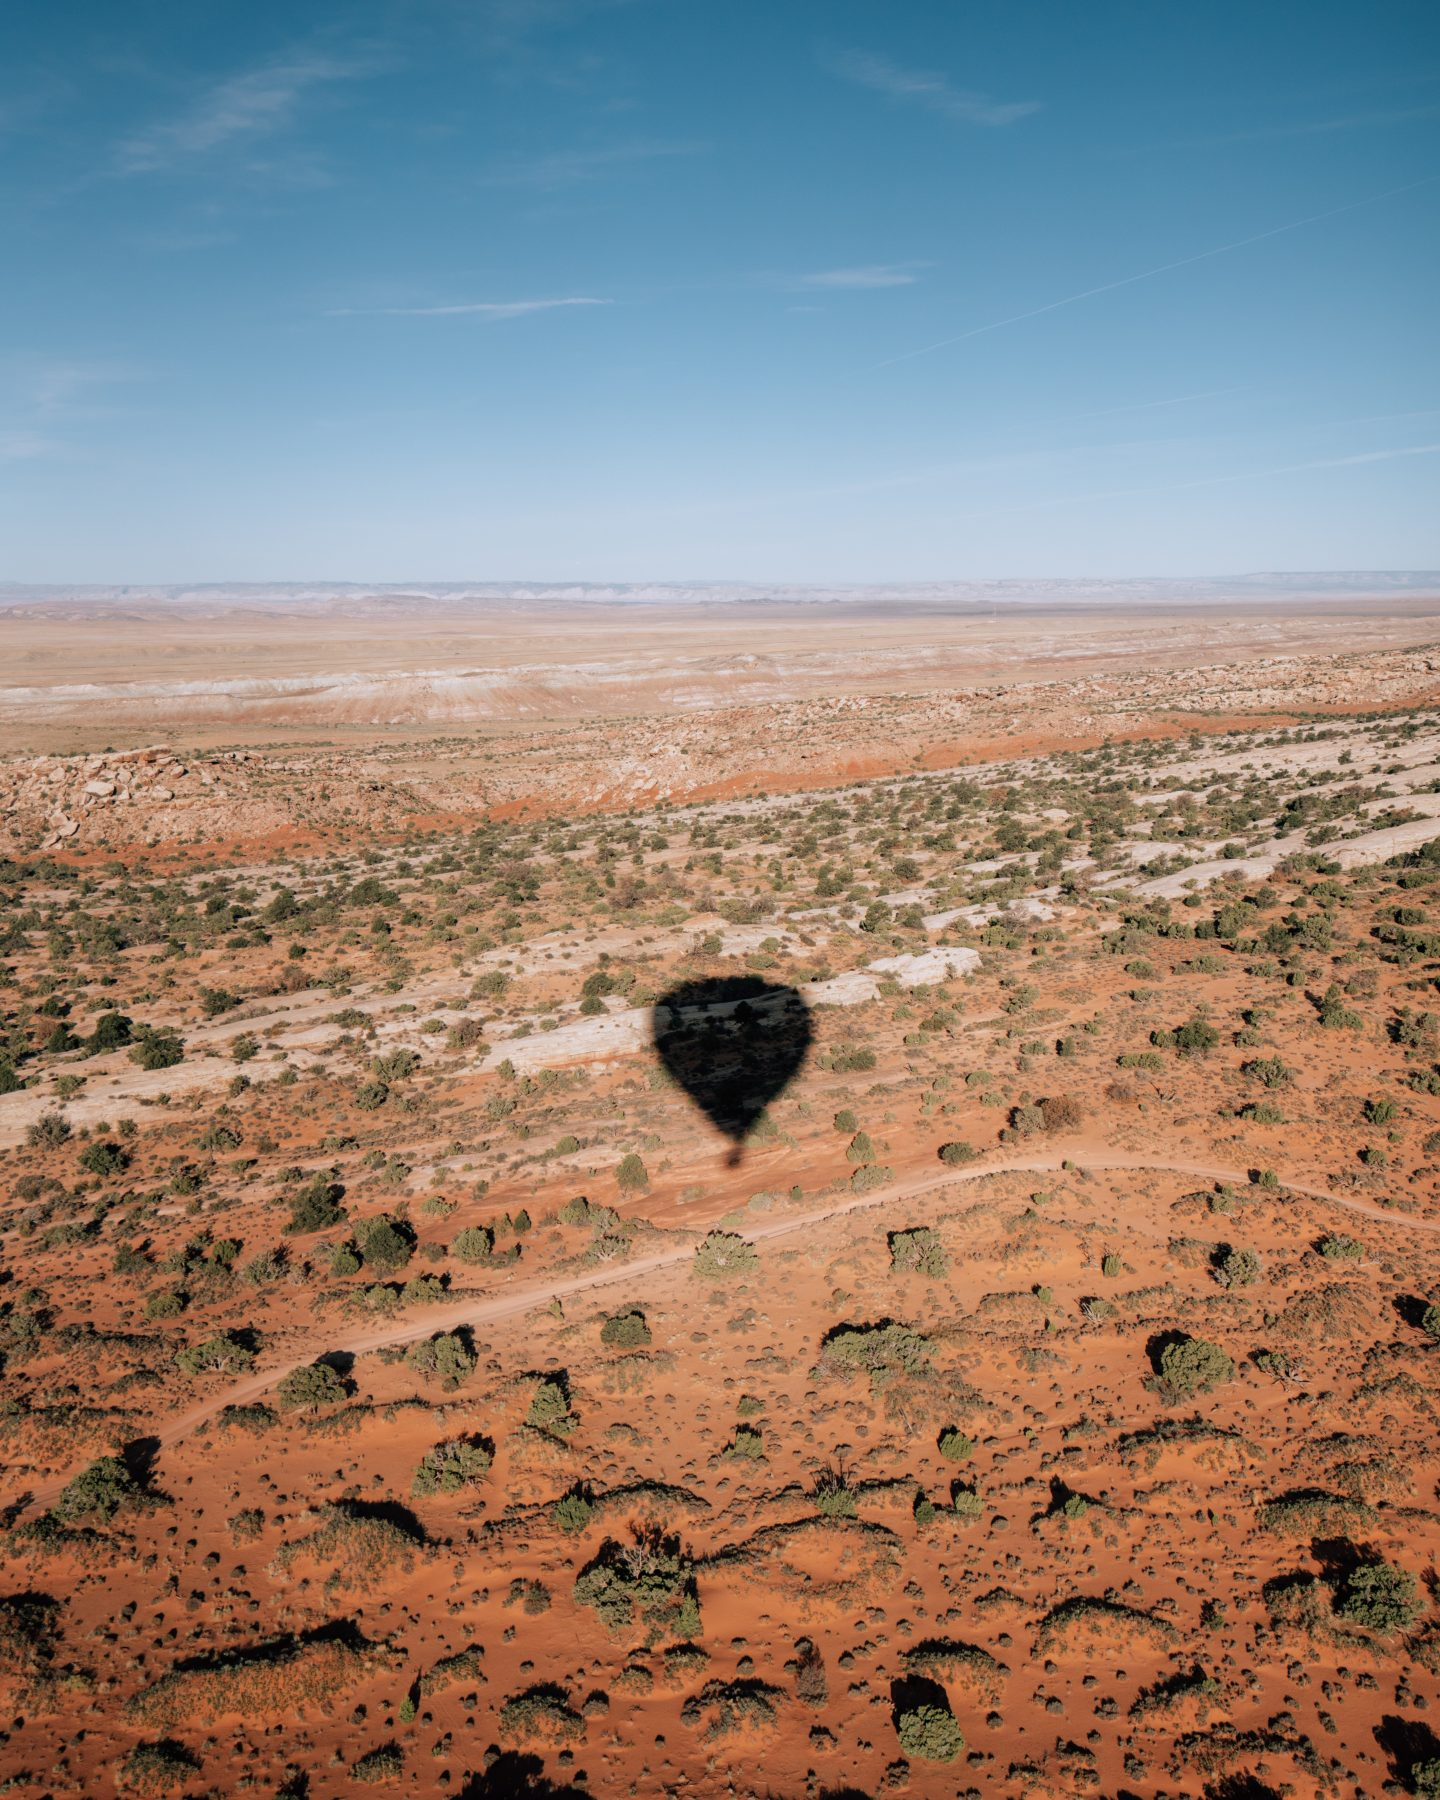 View from the hot air balloon ride over Moab, Utah